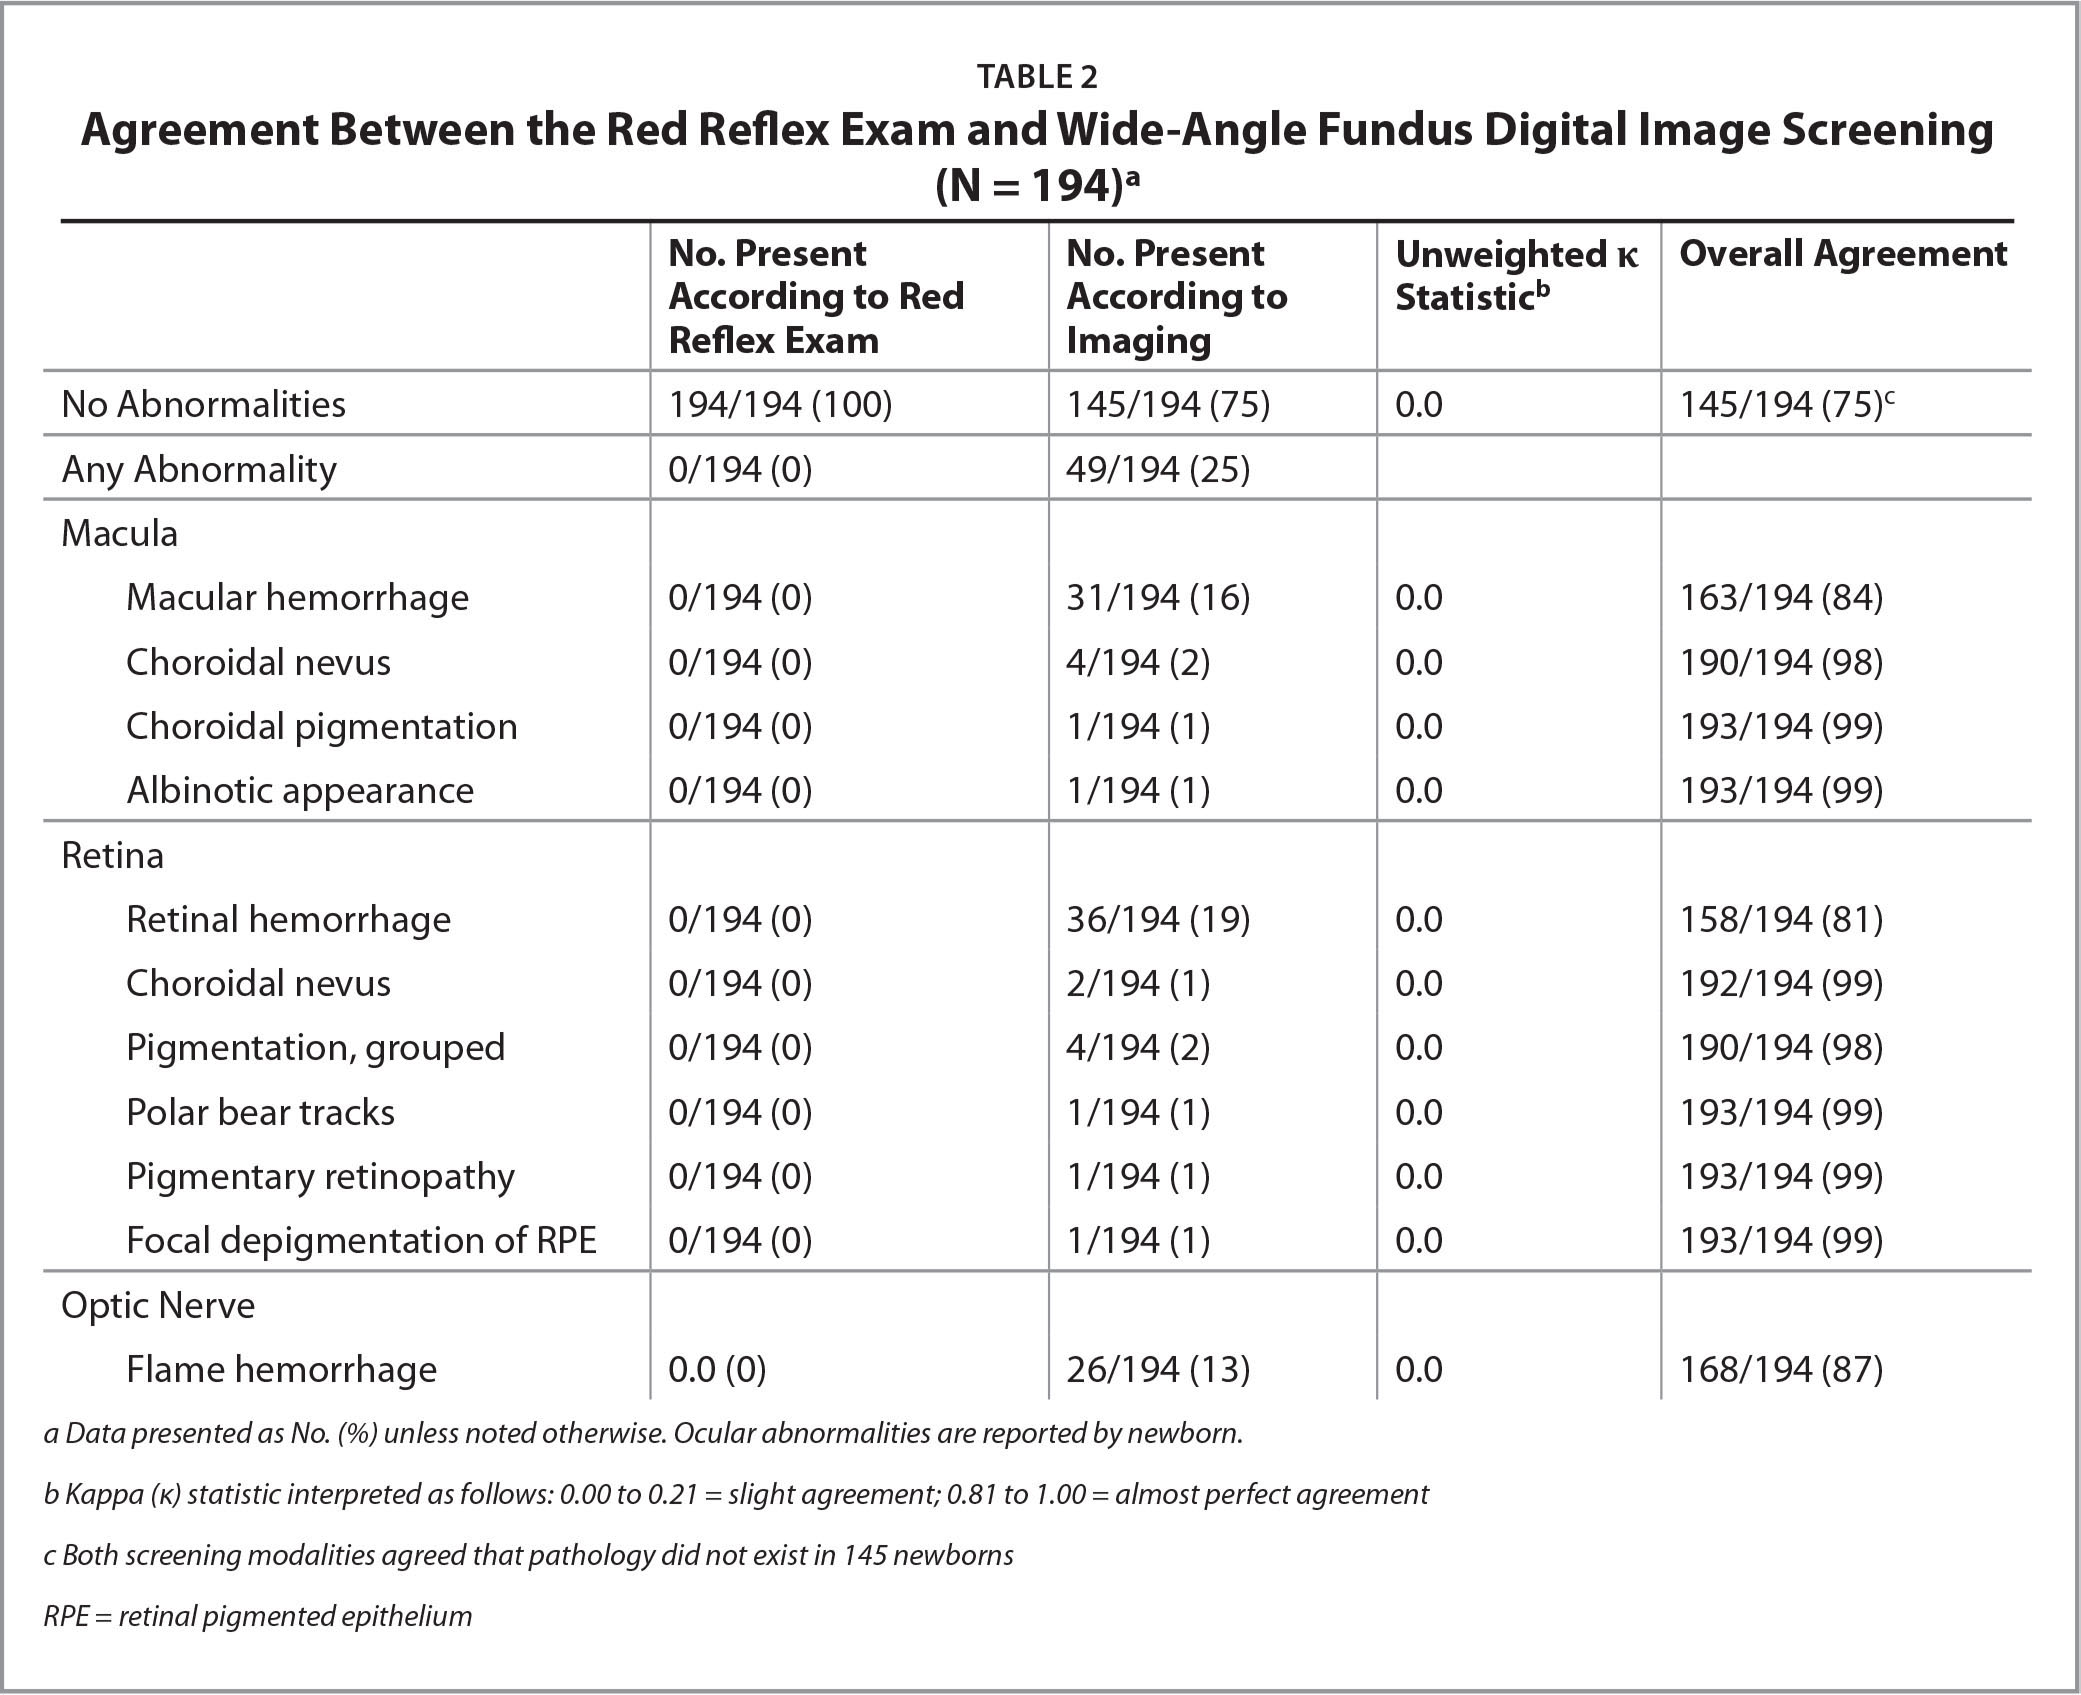 Agreement Between the Red Reflex Exam and Wide-Angle Fundus Digital Image Screening (N = 194)a